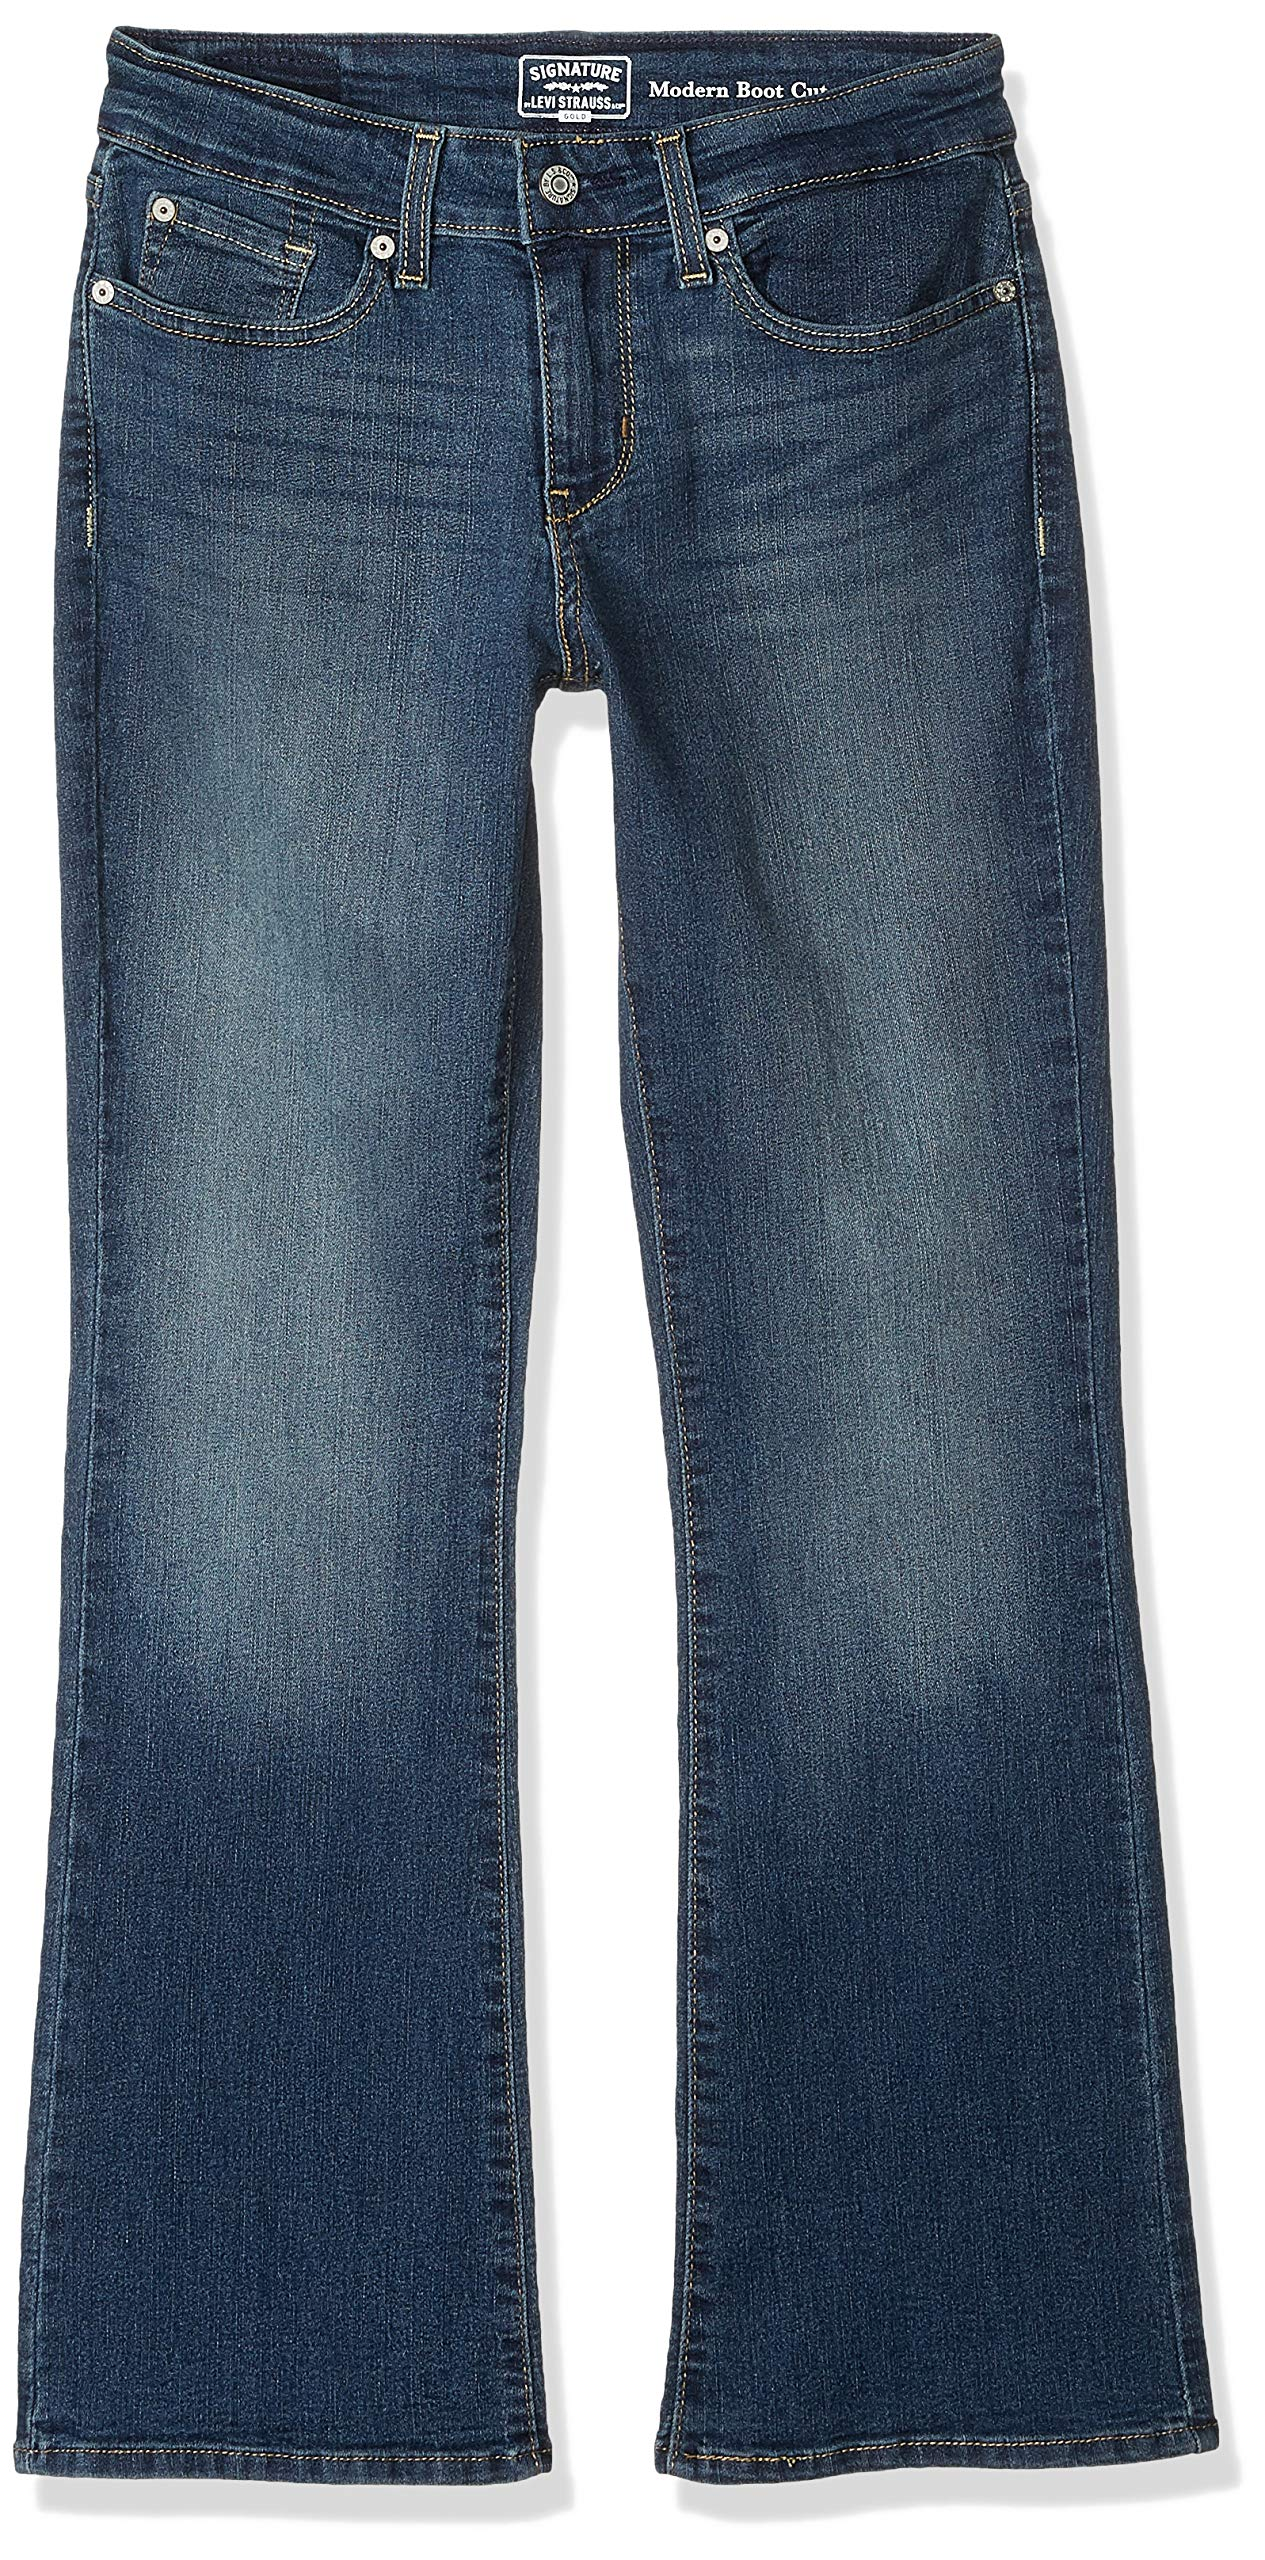 Signature by Levi Strauss & Co Women's Modern Boot Cut Jeans, Grey Stone, 12 Long